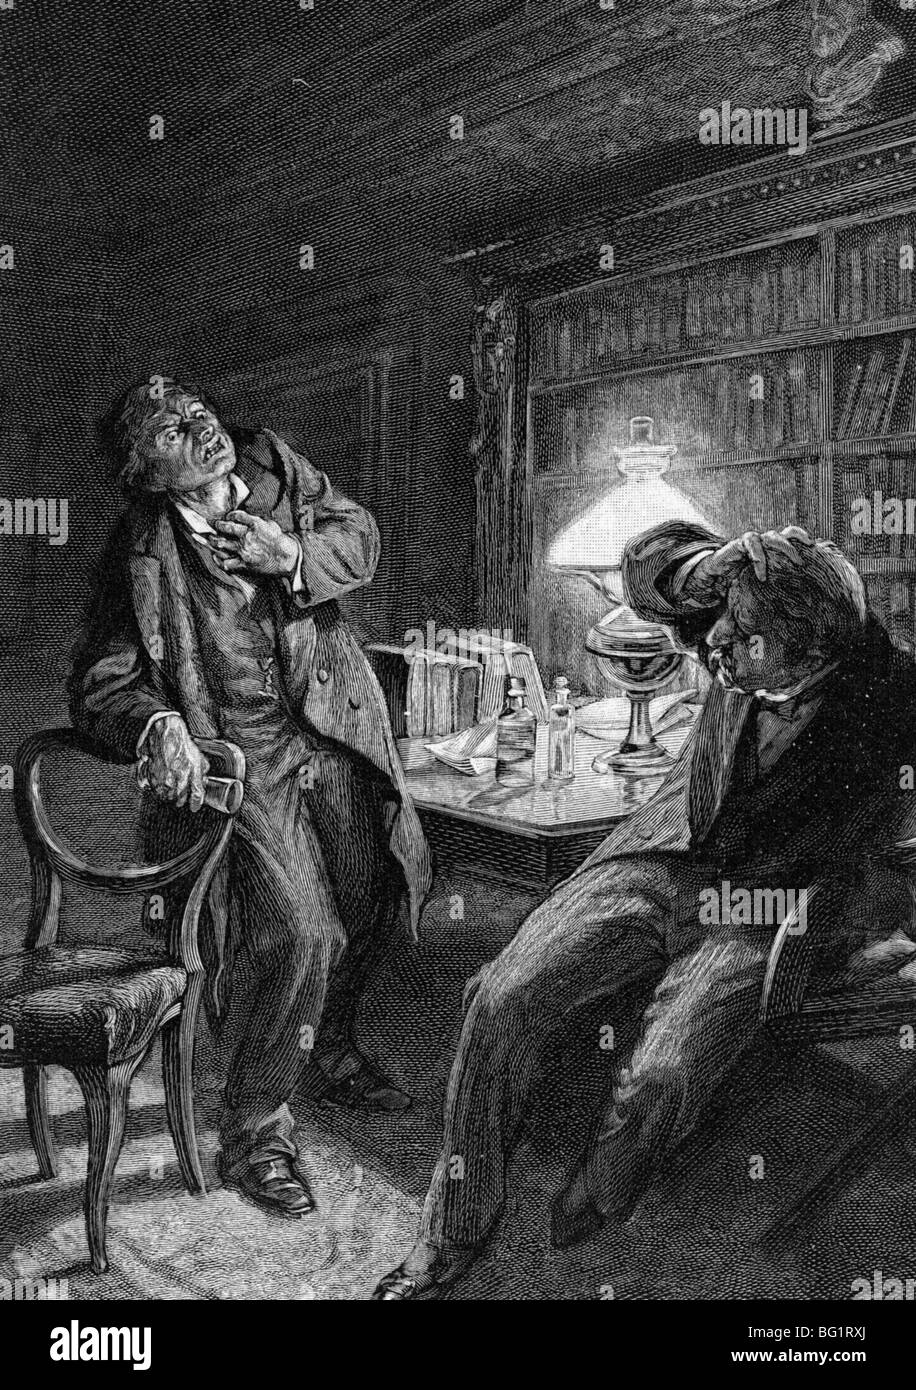 a summary of the strange case of dr jekyll and mr hyde a novel by robert louis stevenson Written by robert louis stevenson, narrated by richard armitage download the app and start listening to the strange case of dr jekyll and mr hyde today - free with a 30 day trial keep your.